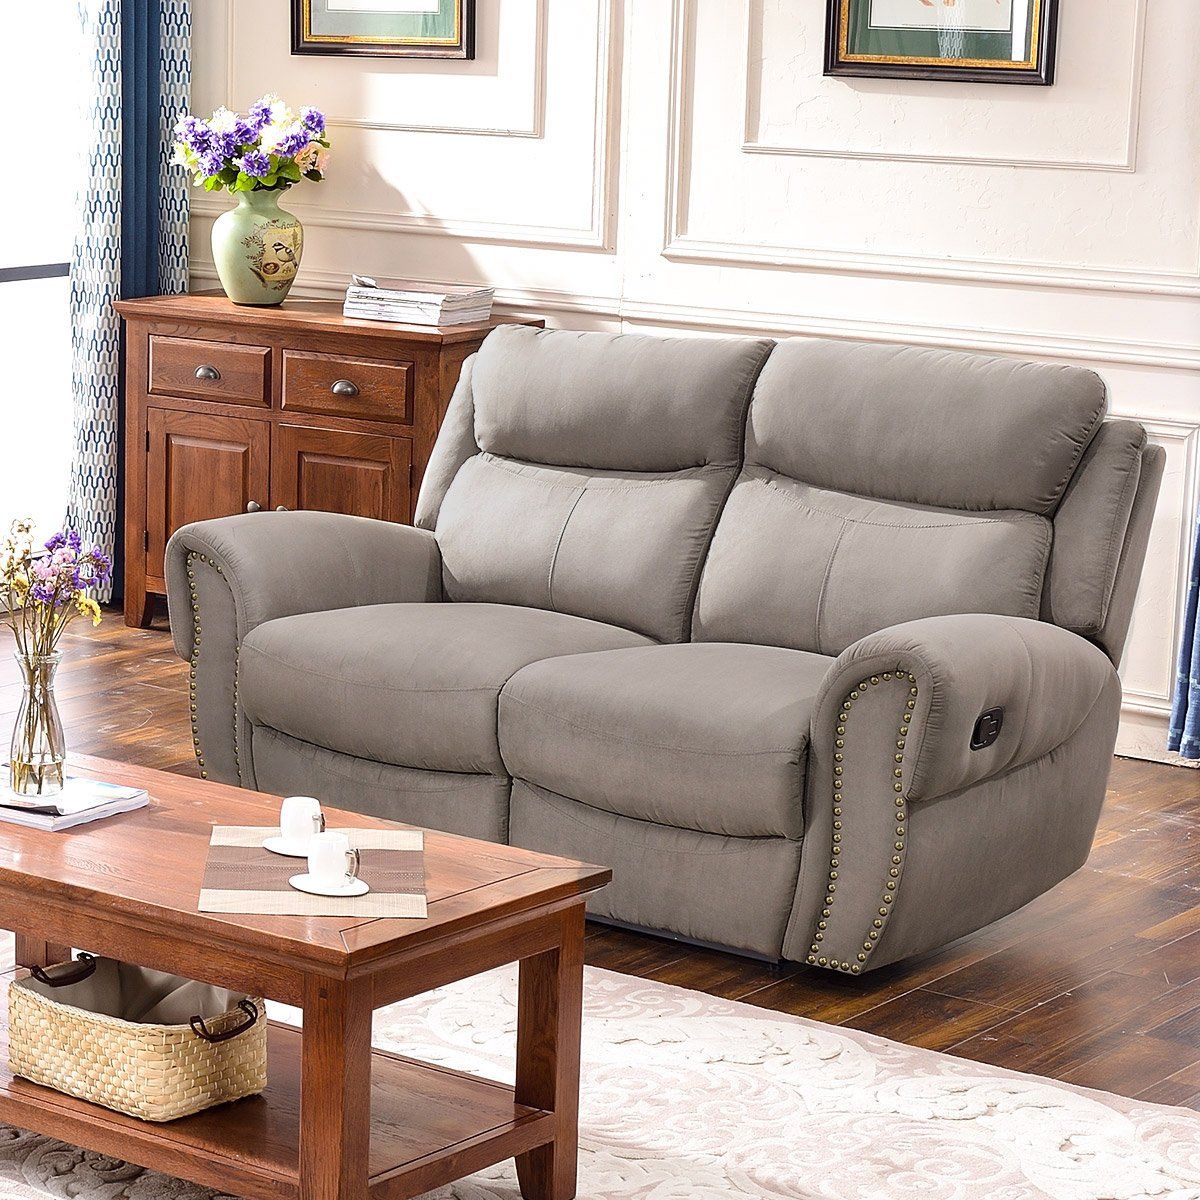 Awesome Best Loveseat Recliner Under 500 For Your Living Room Space Pabps2019 Chair Design Images Pabps2019Com